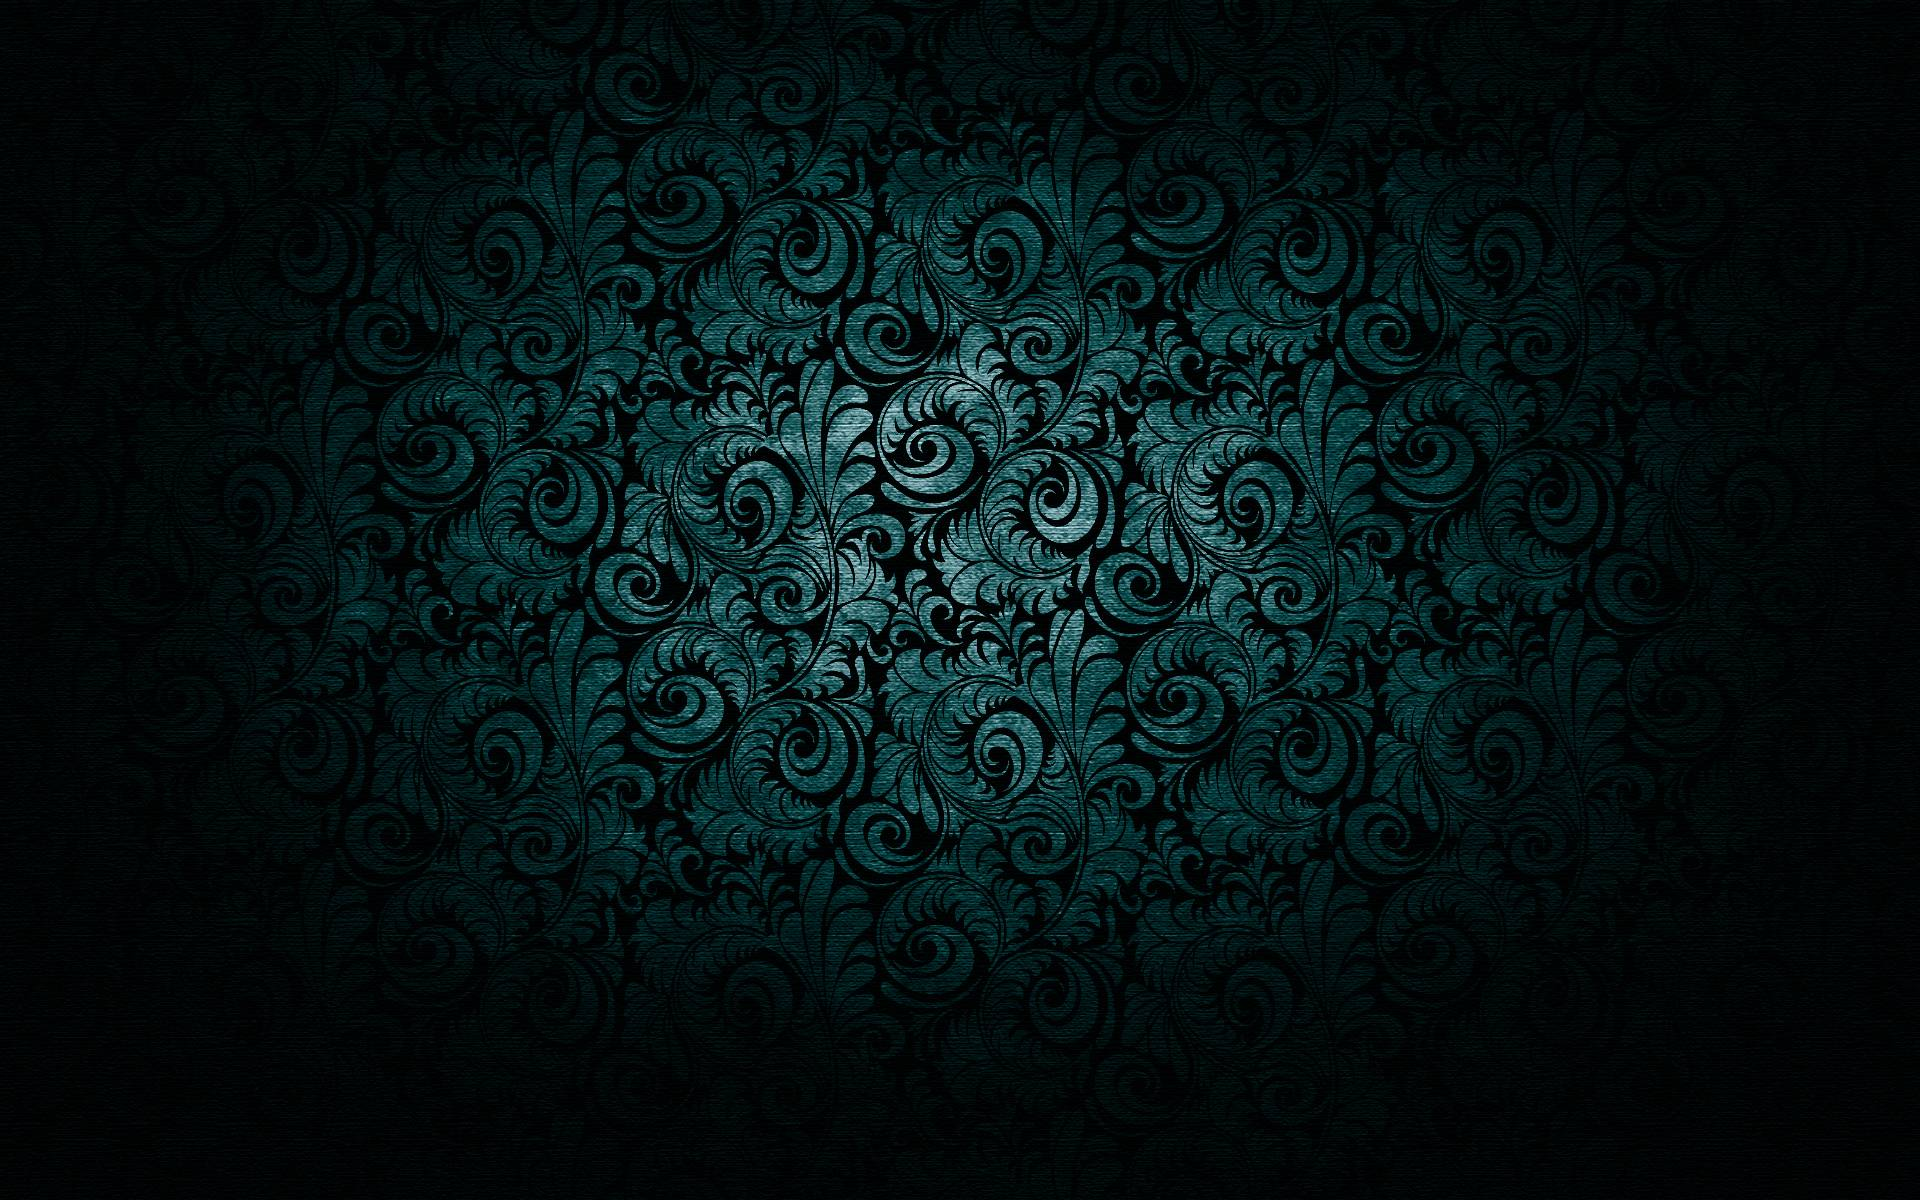 Fancy Backgrounds Image - Wallpaper Cave